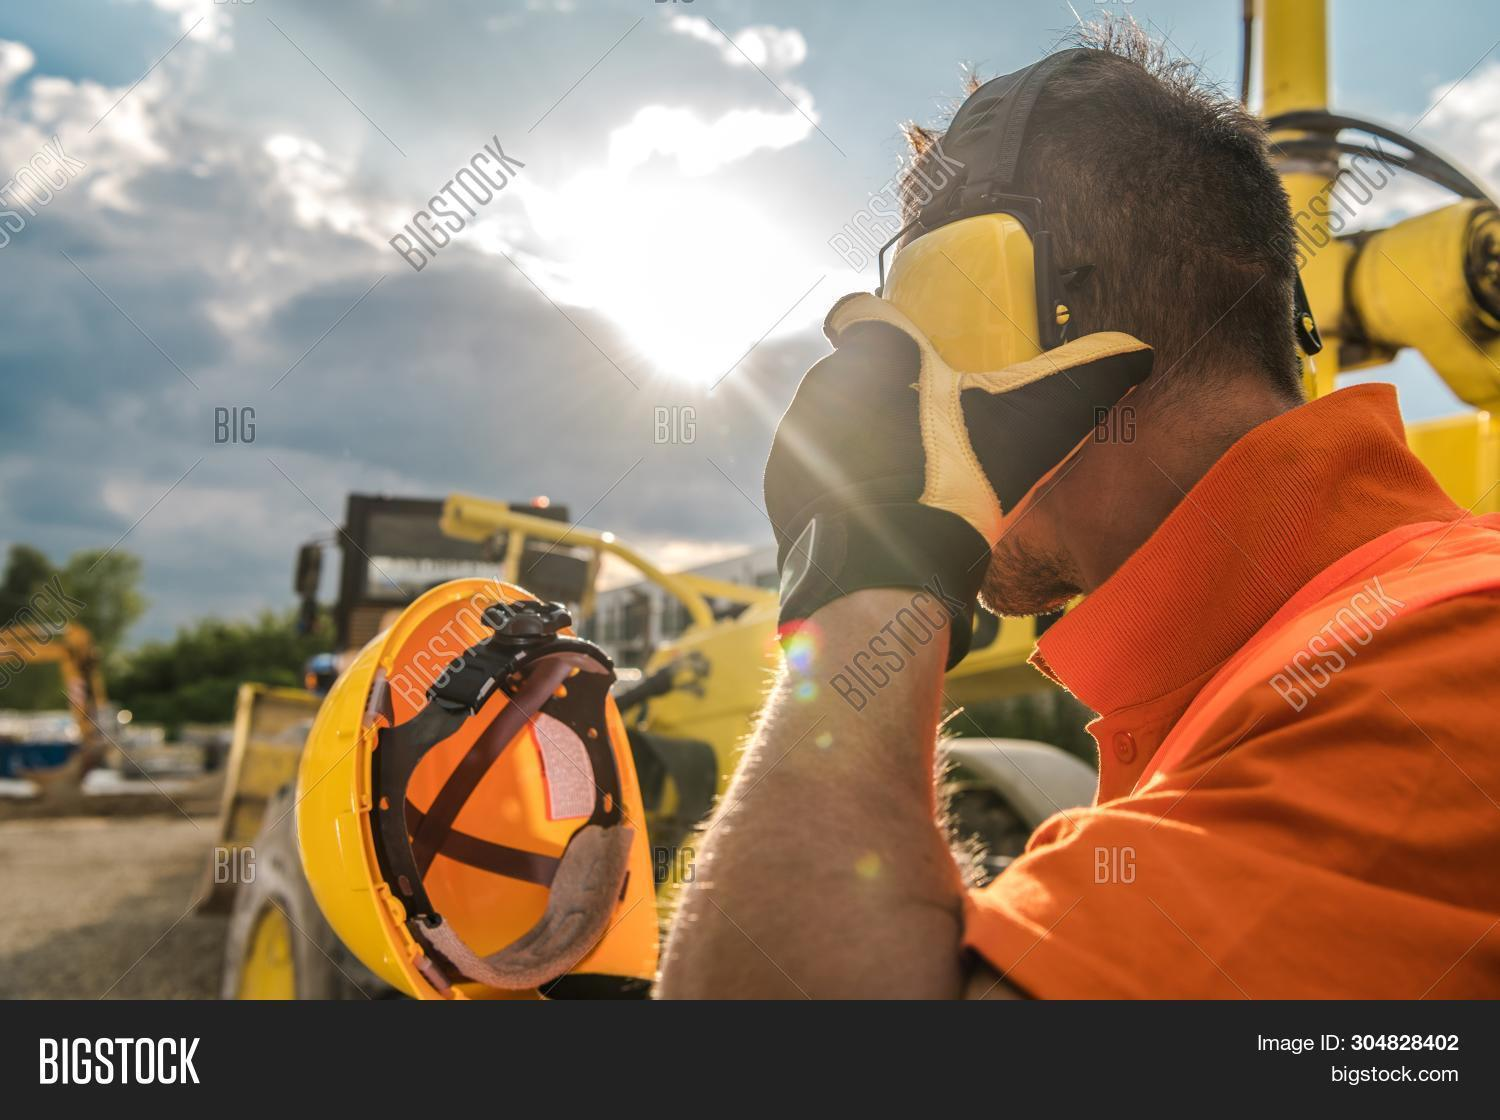 caucasian,construction,contractor,day,development,driver,har,hard,head,headphones,healthy,hearing,helmet,industrial,industry,loud,loudness,machine,machinery,noise,operator,professional,protection,protective,reduction,safety,sound,sunny,technician